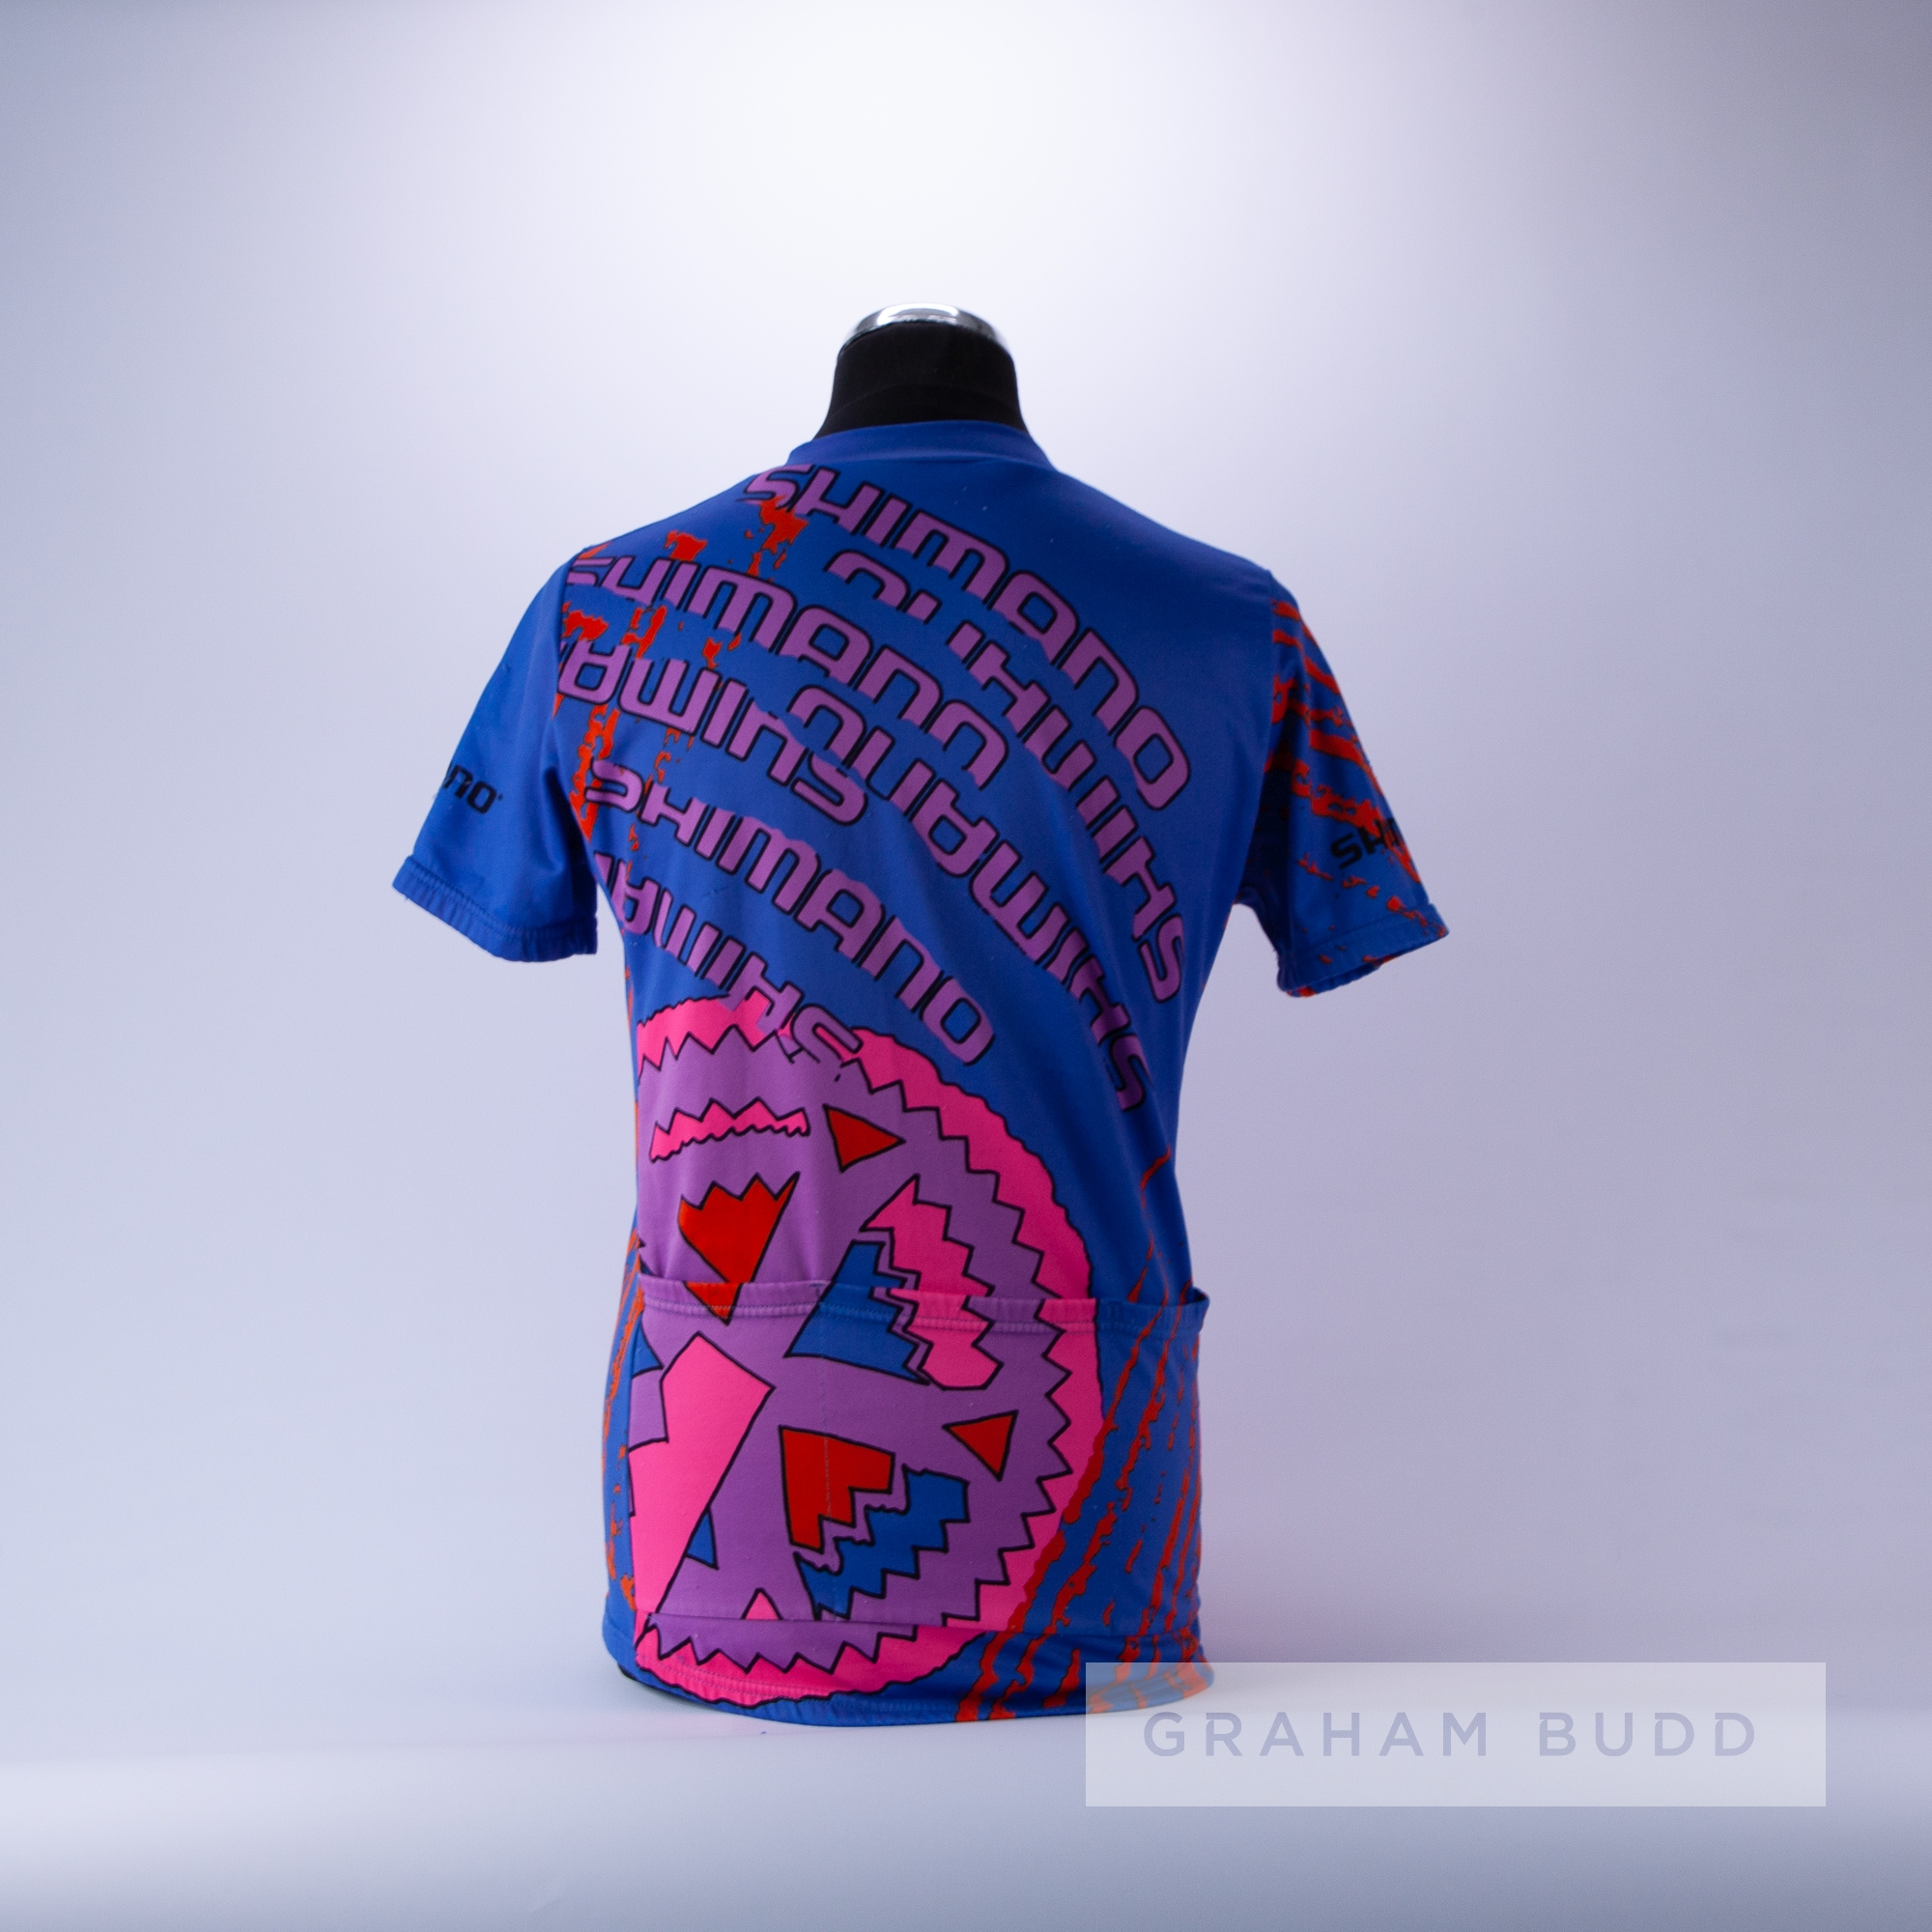 1990 blue, pink, purple and red Shimano Biemme Cycling race jersey, scarce, polyester and tactel - Image 4 of 4